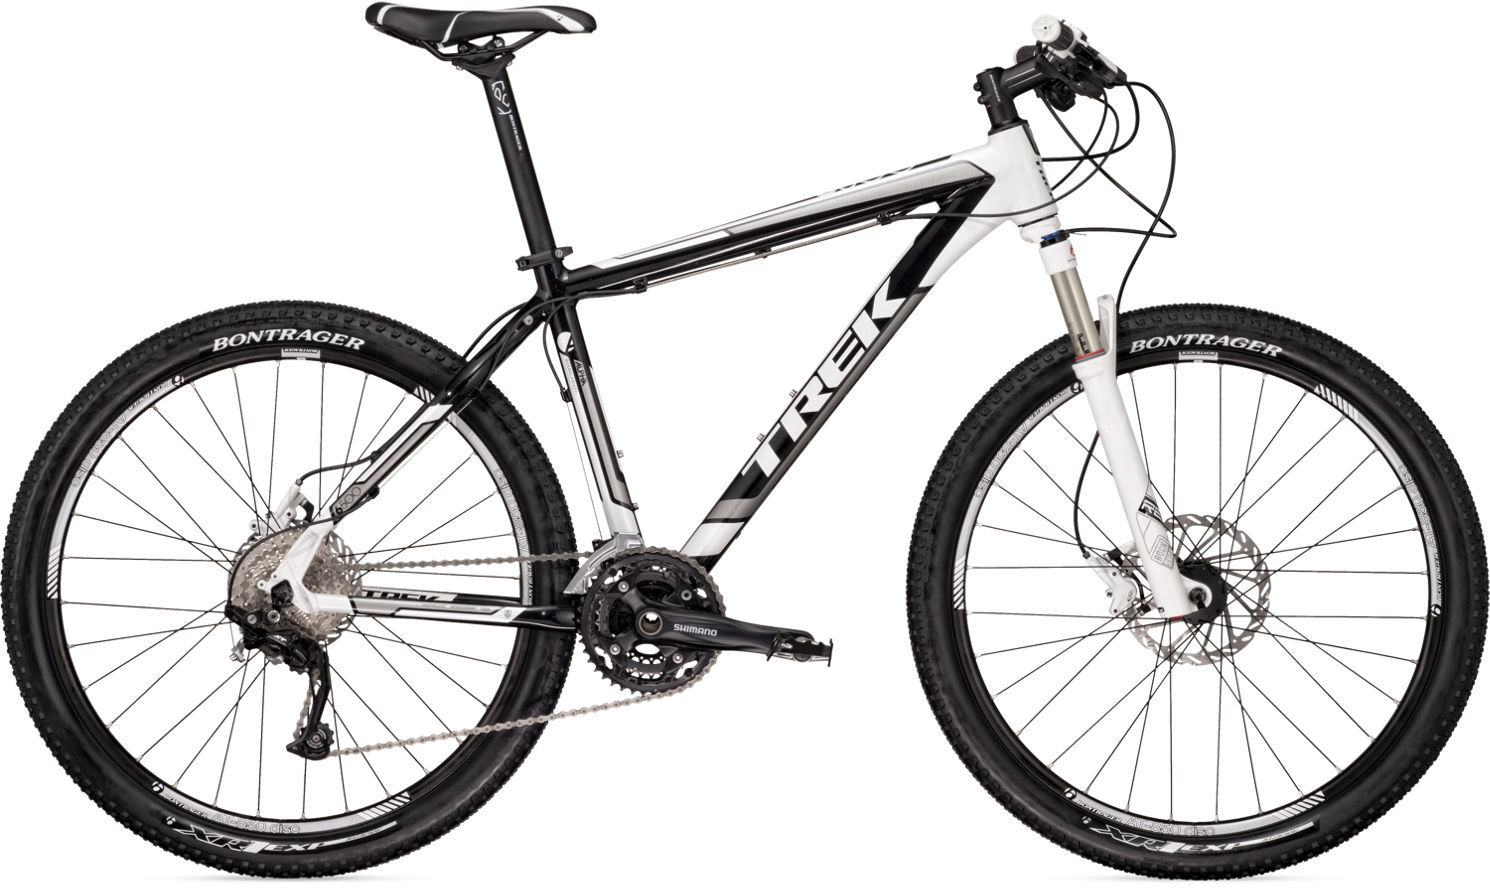 Trek 6500 2012 Review The Bike List